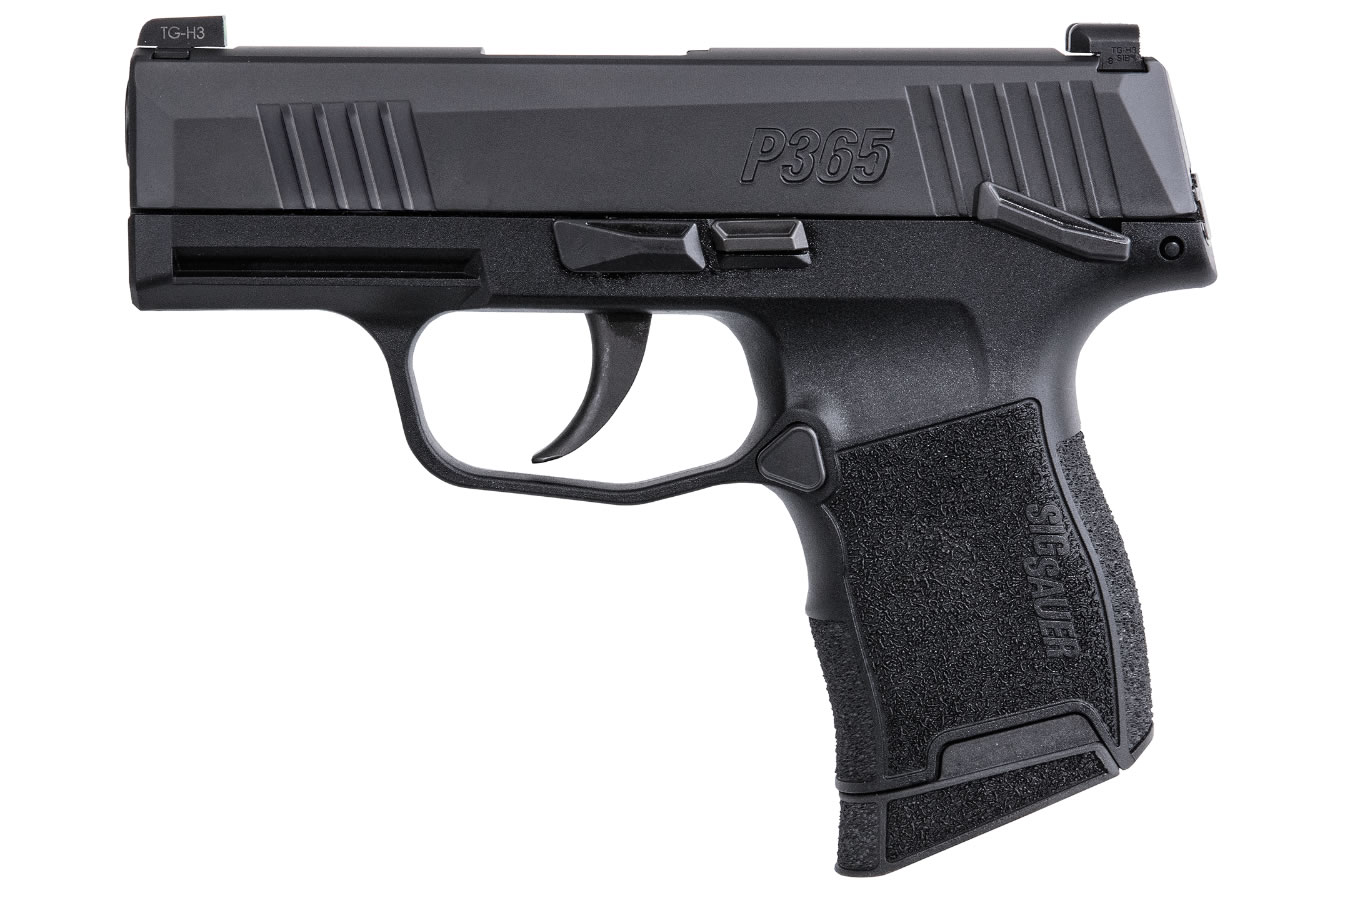 P365 9MM WITH MANUAL SAFETY (LE)